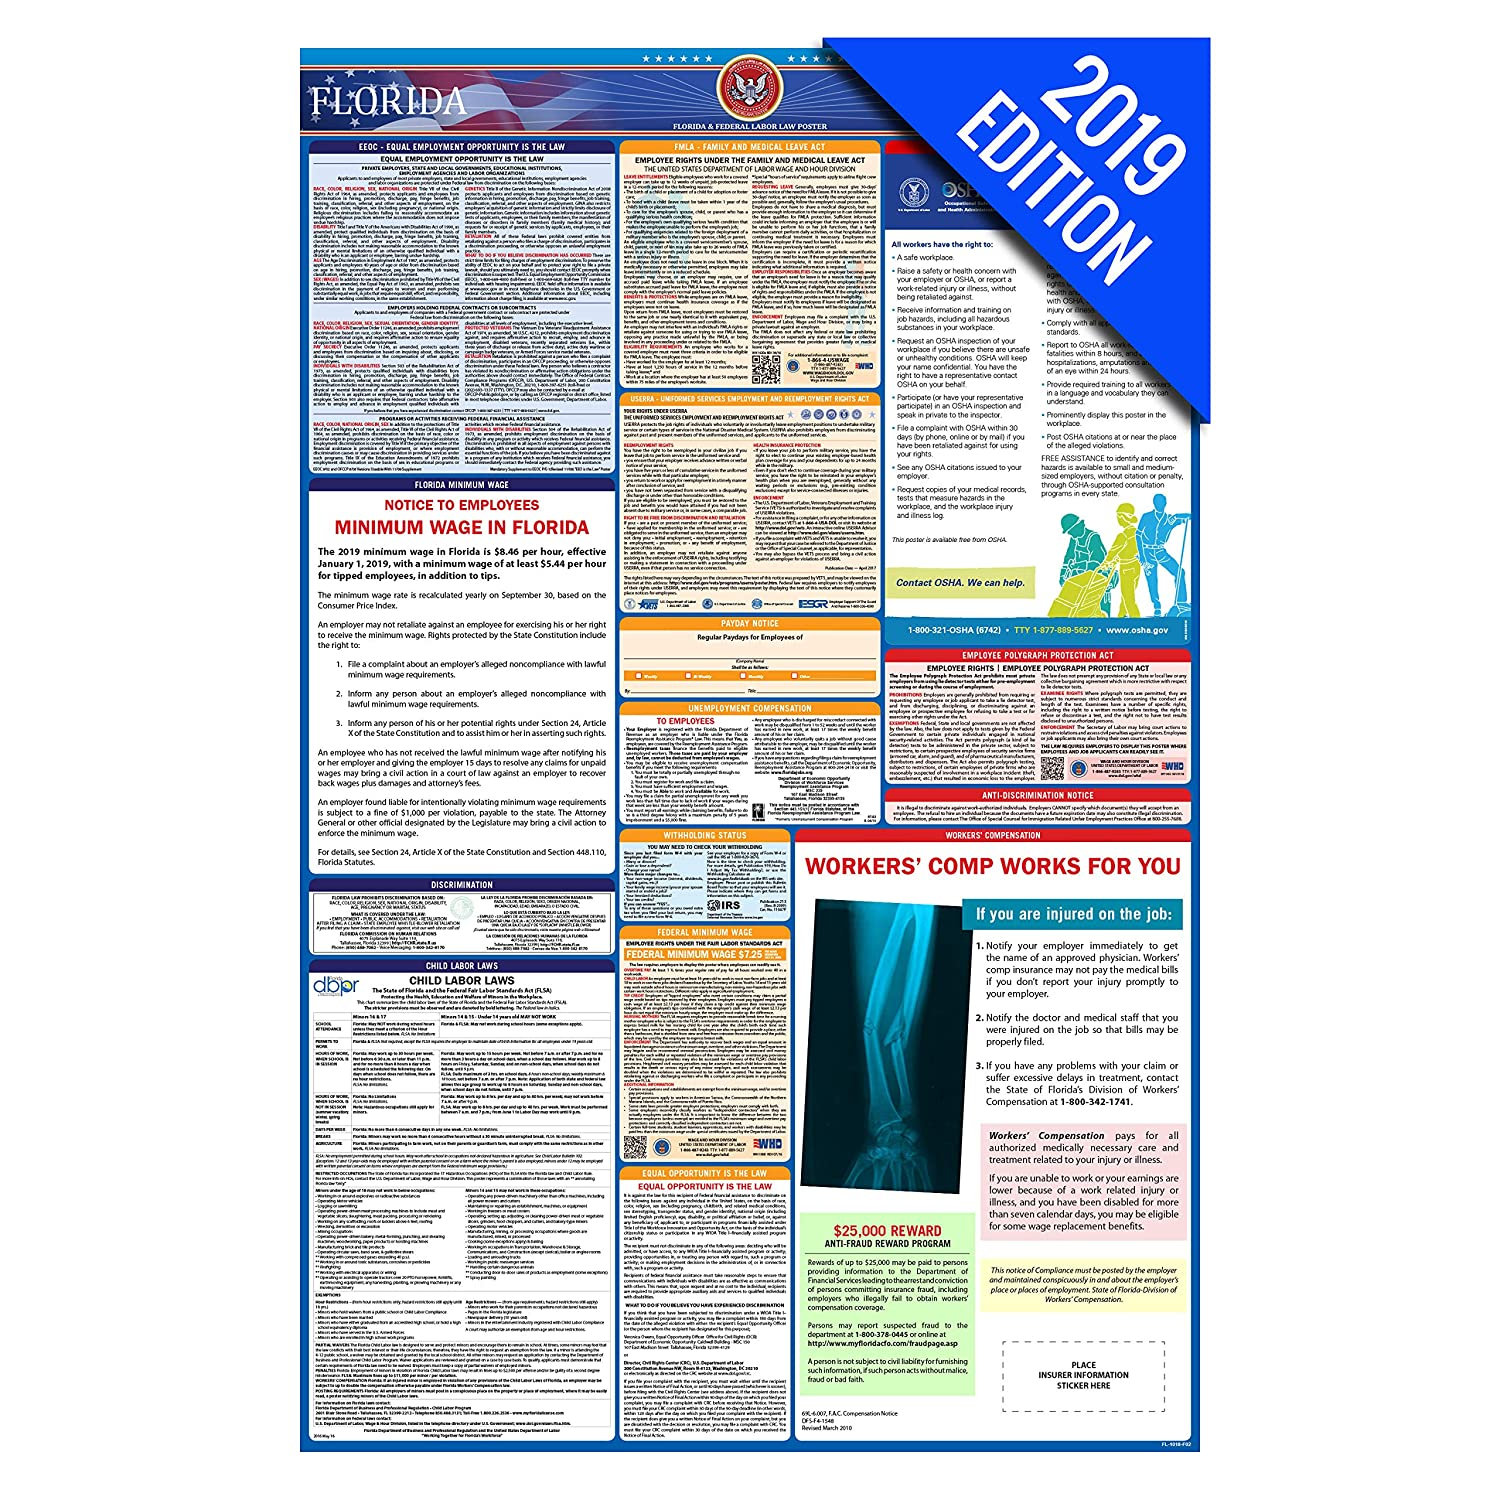 2019 Florida Labor Law Poster State Federal Osha Compliant Single Laminated Poster